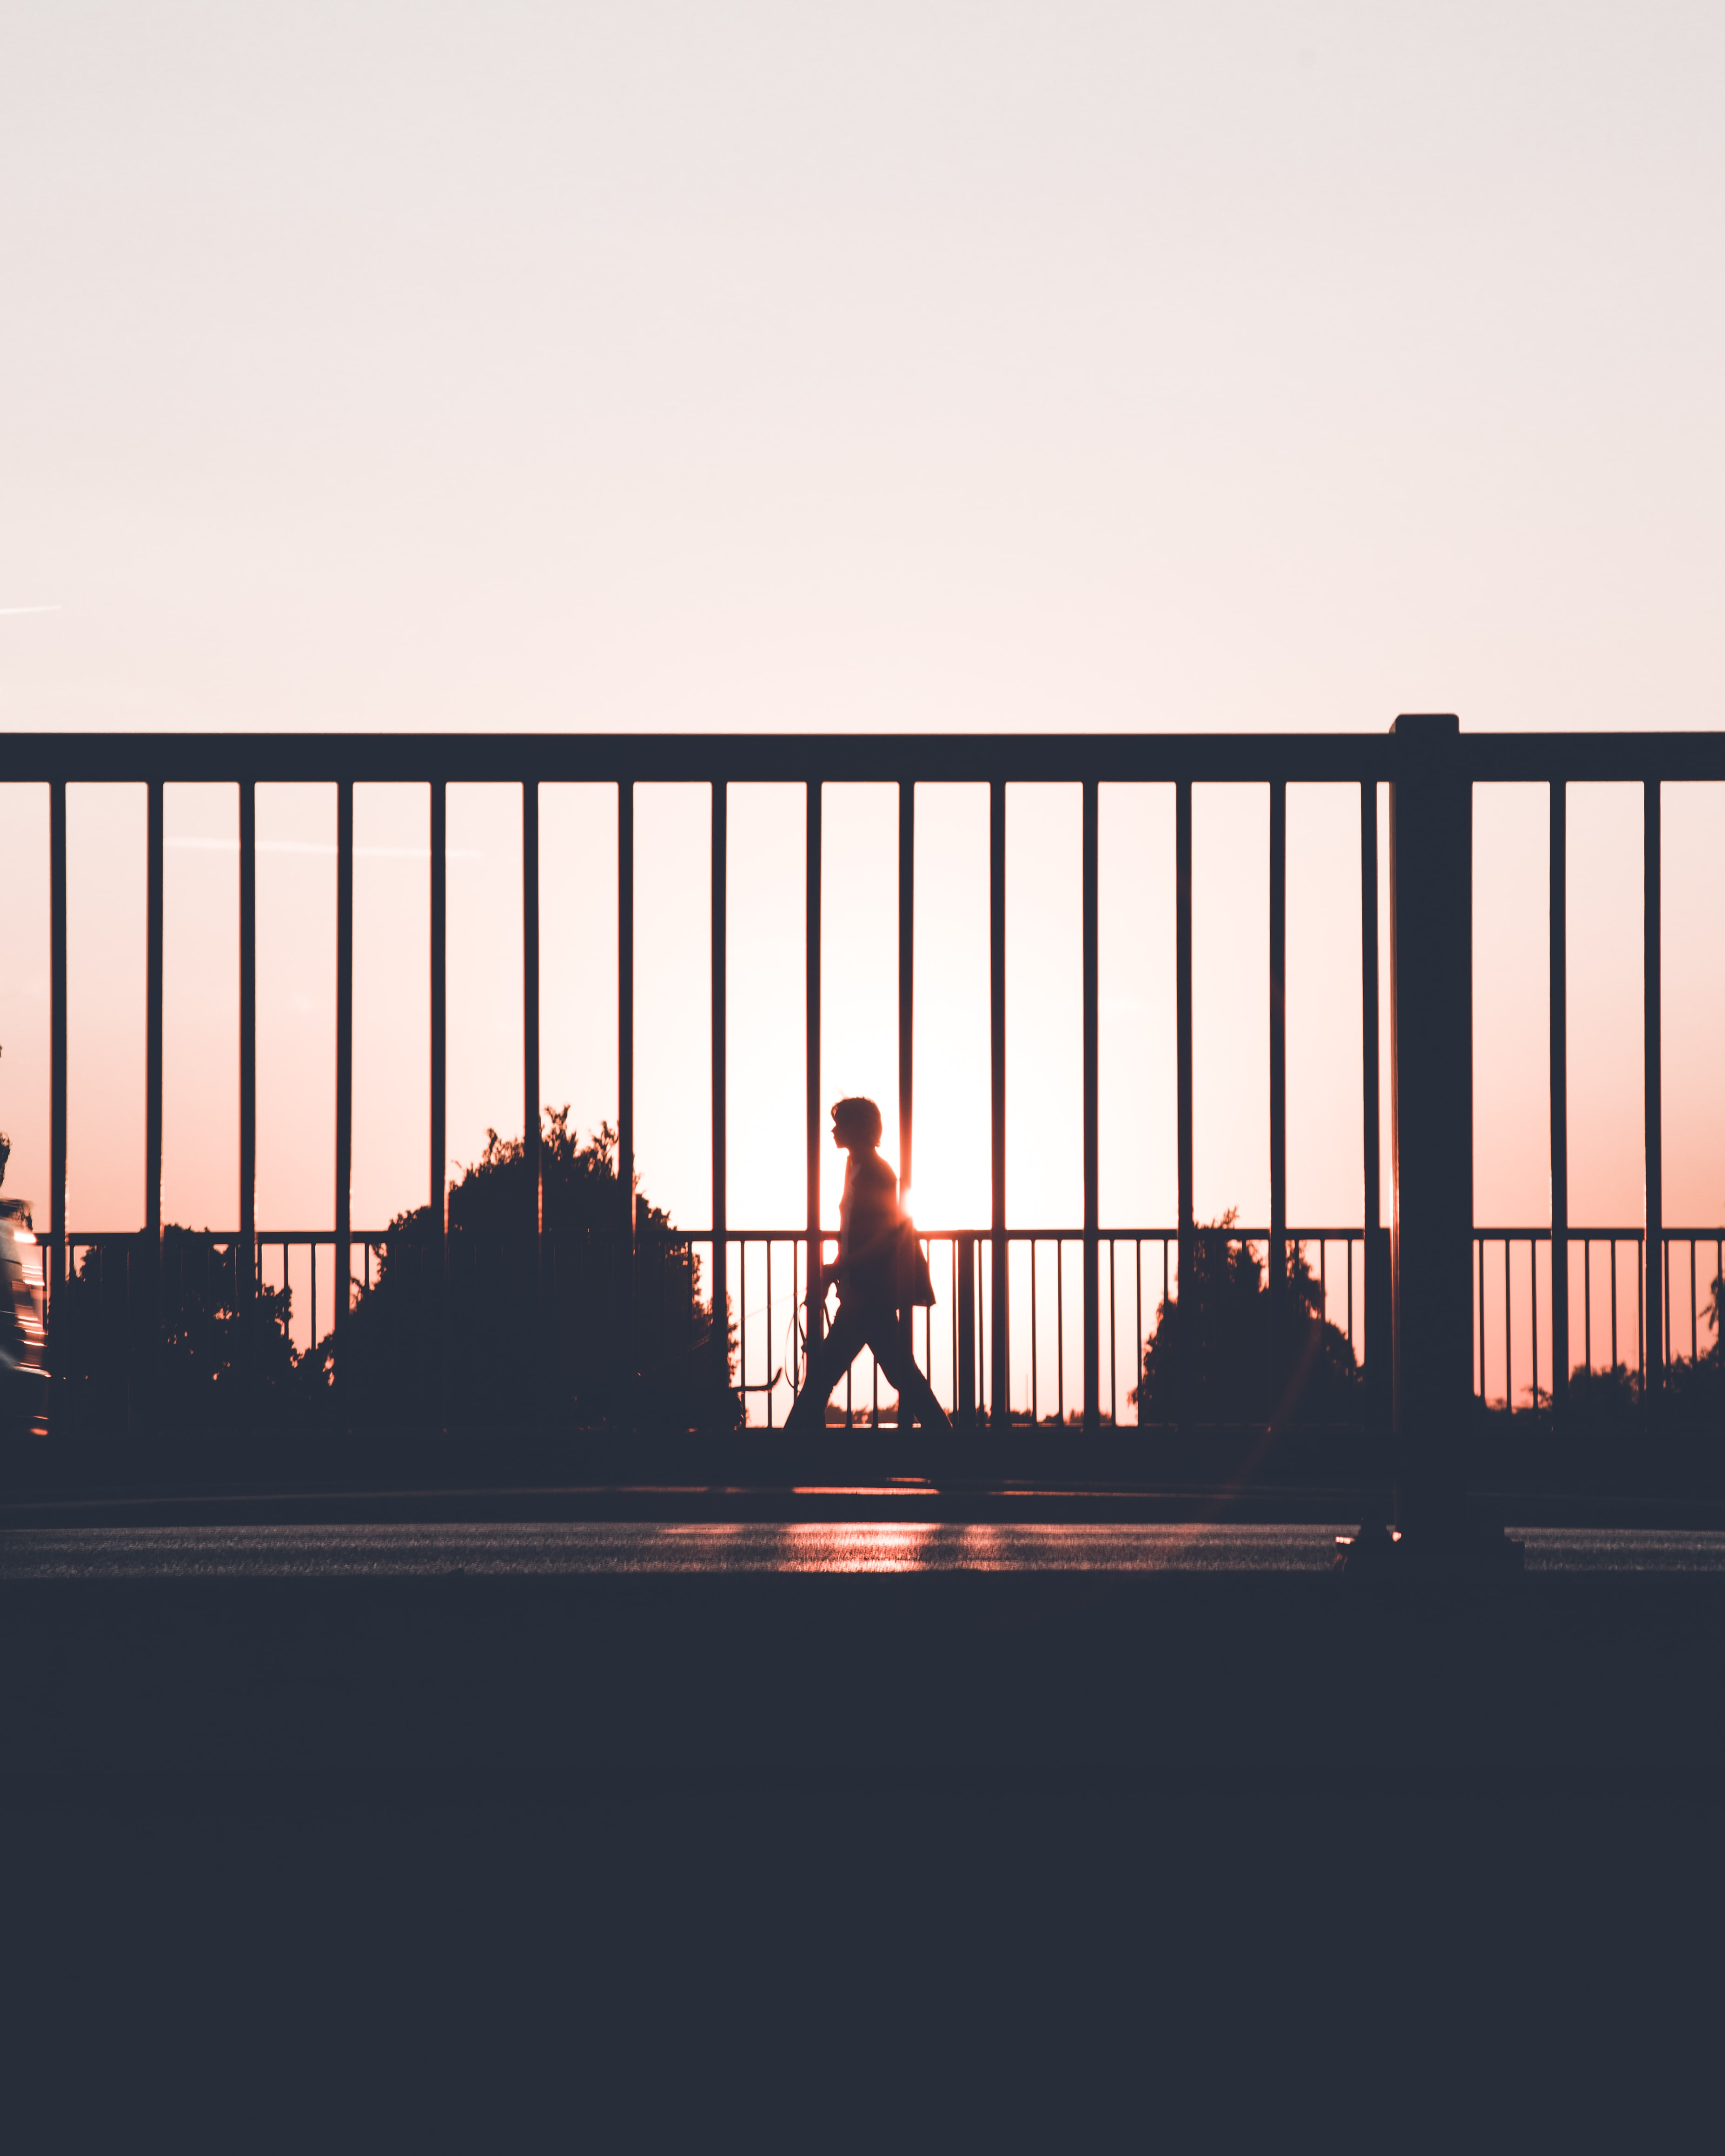 silhouette of person walking on roadside during sunset